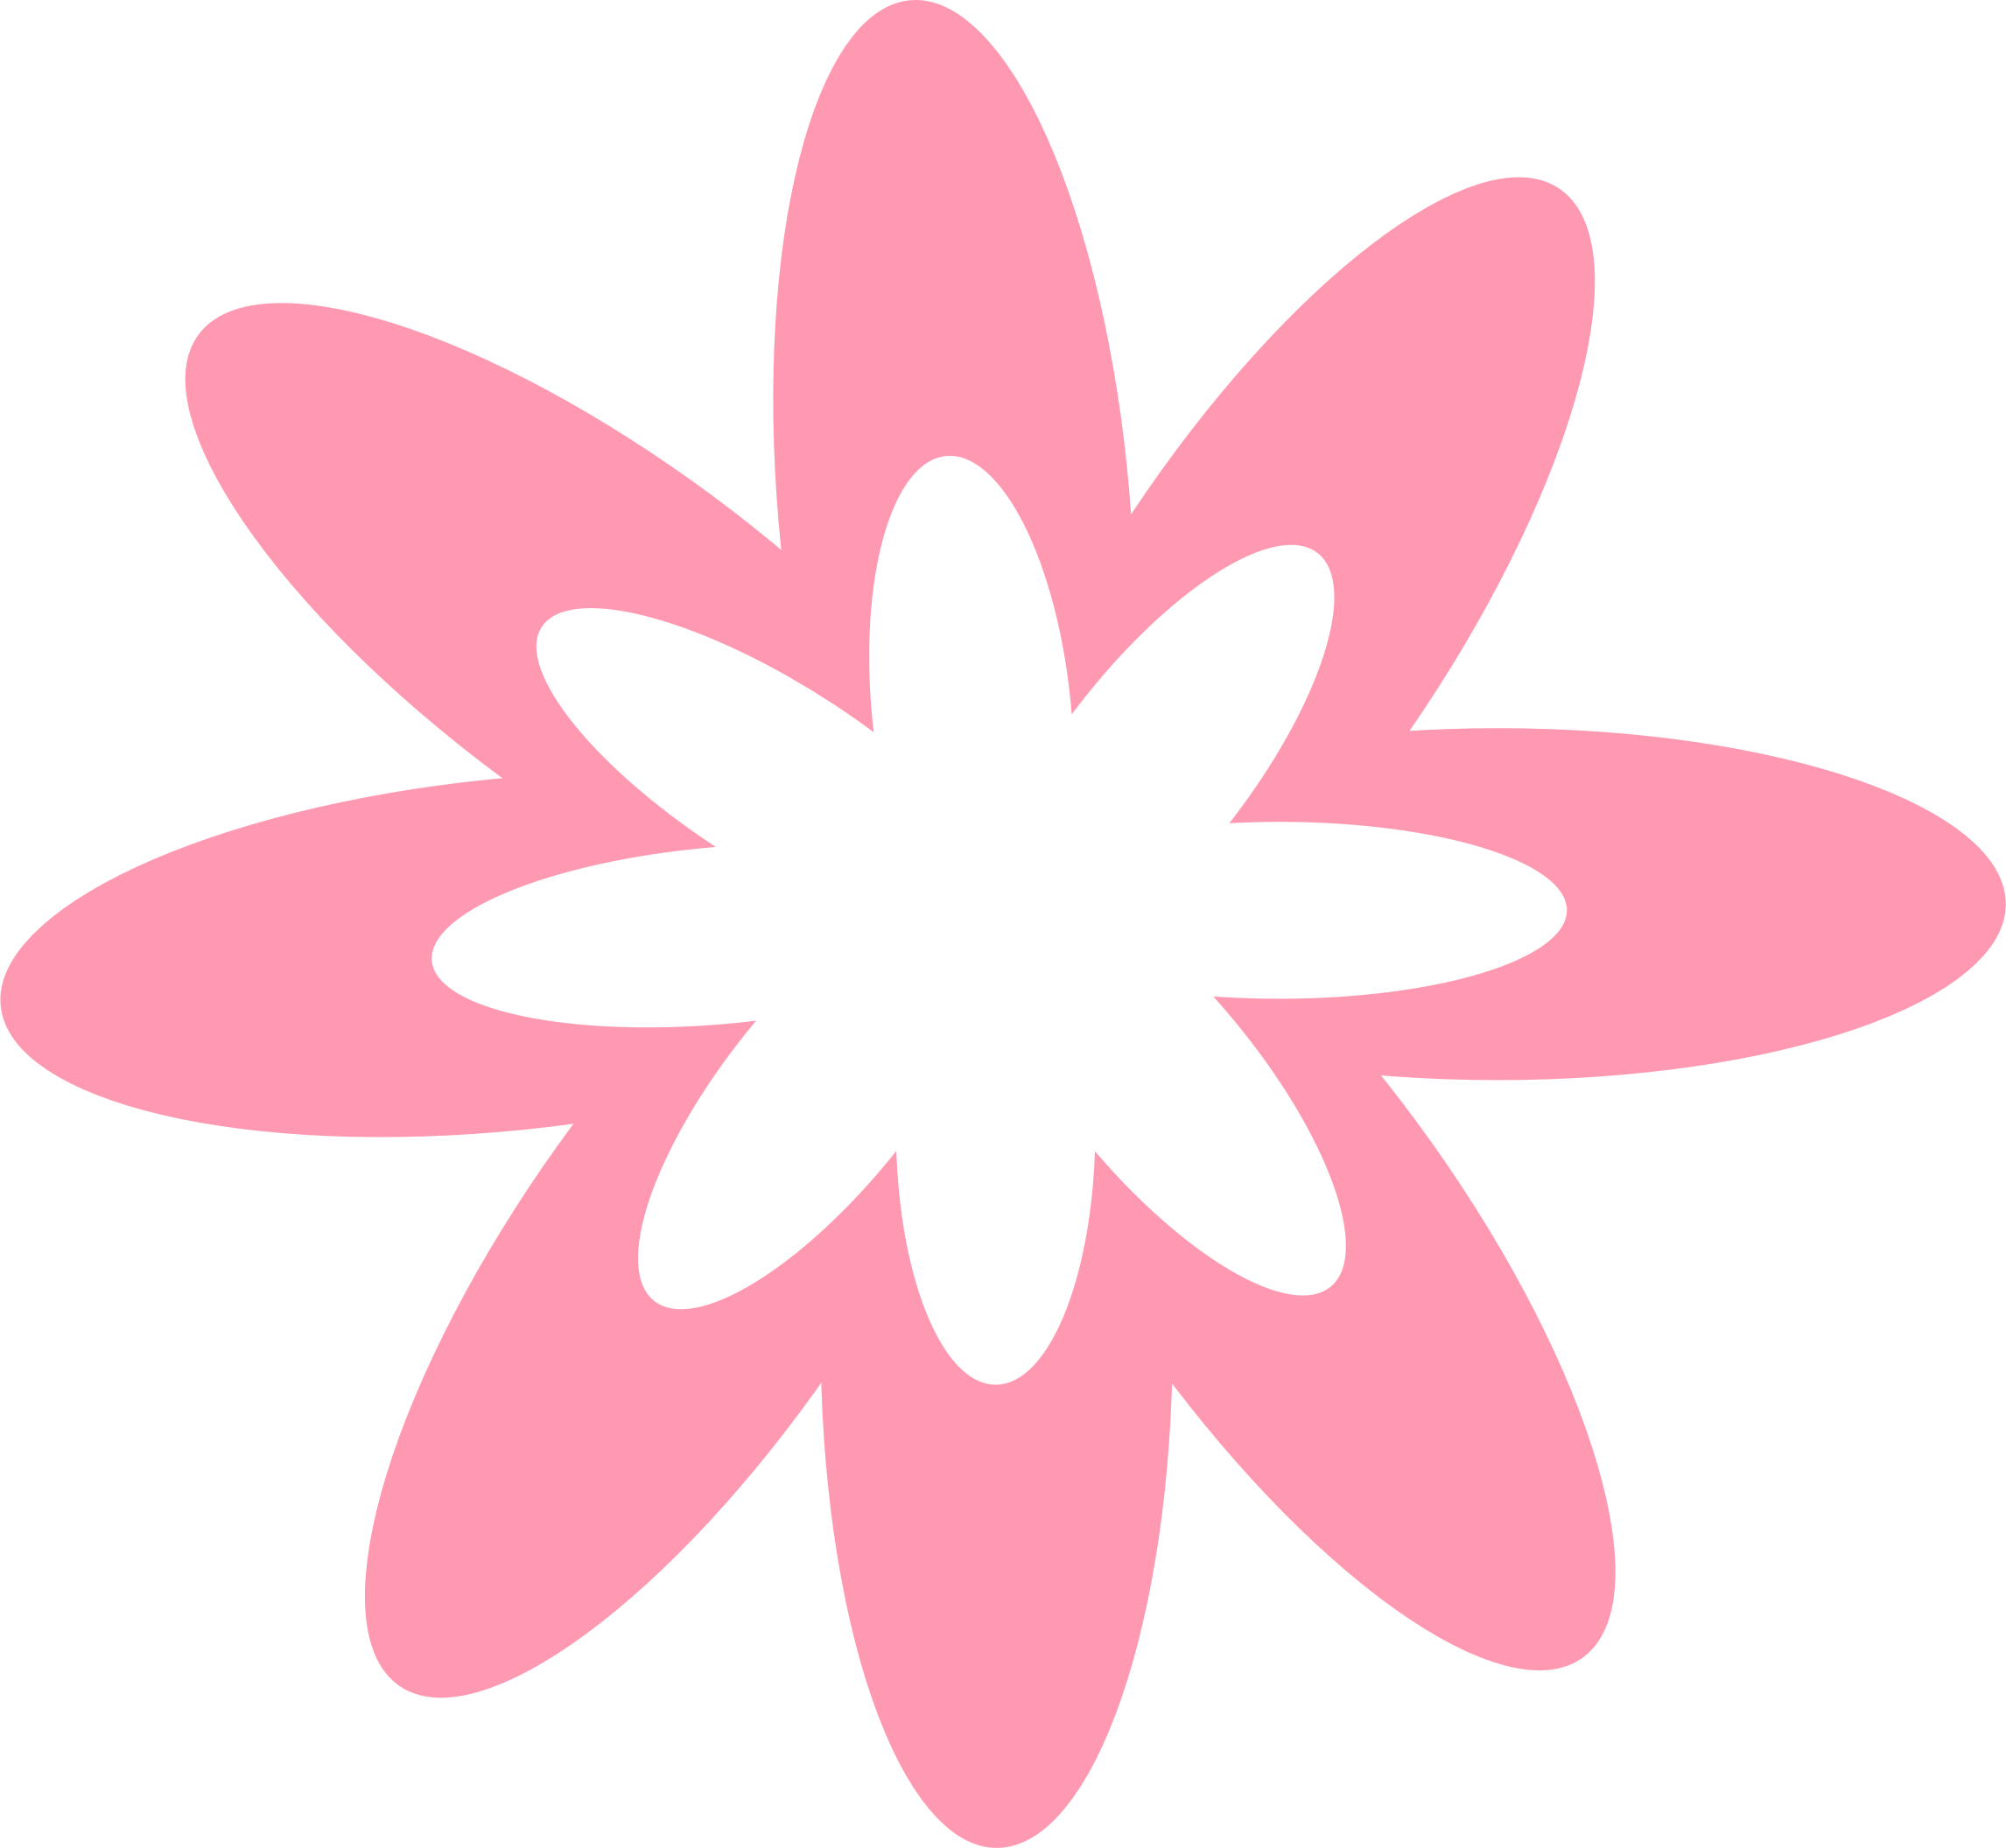 This free Icons Png design of Pink Burst Flower PlusPng.com  - Flower Burst PNG